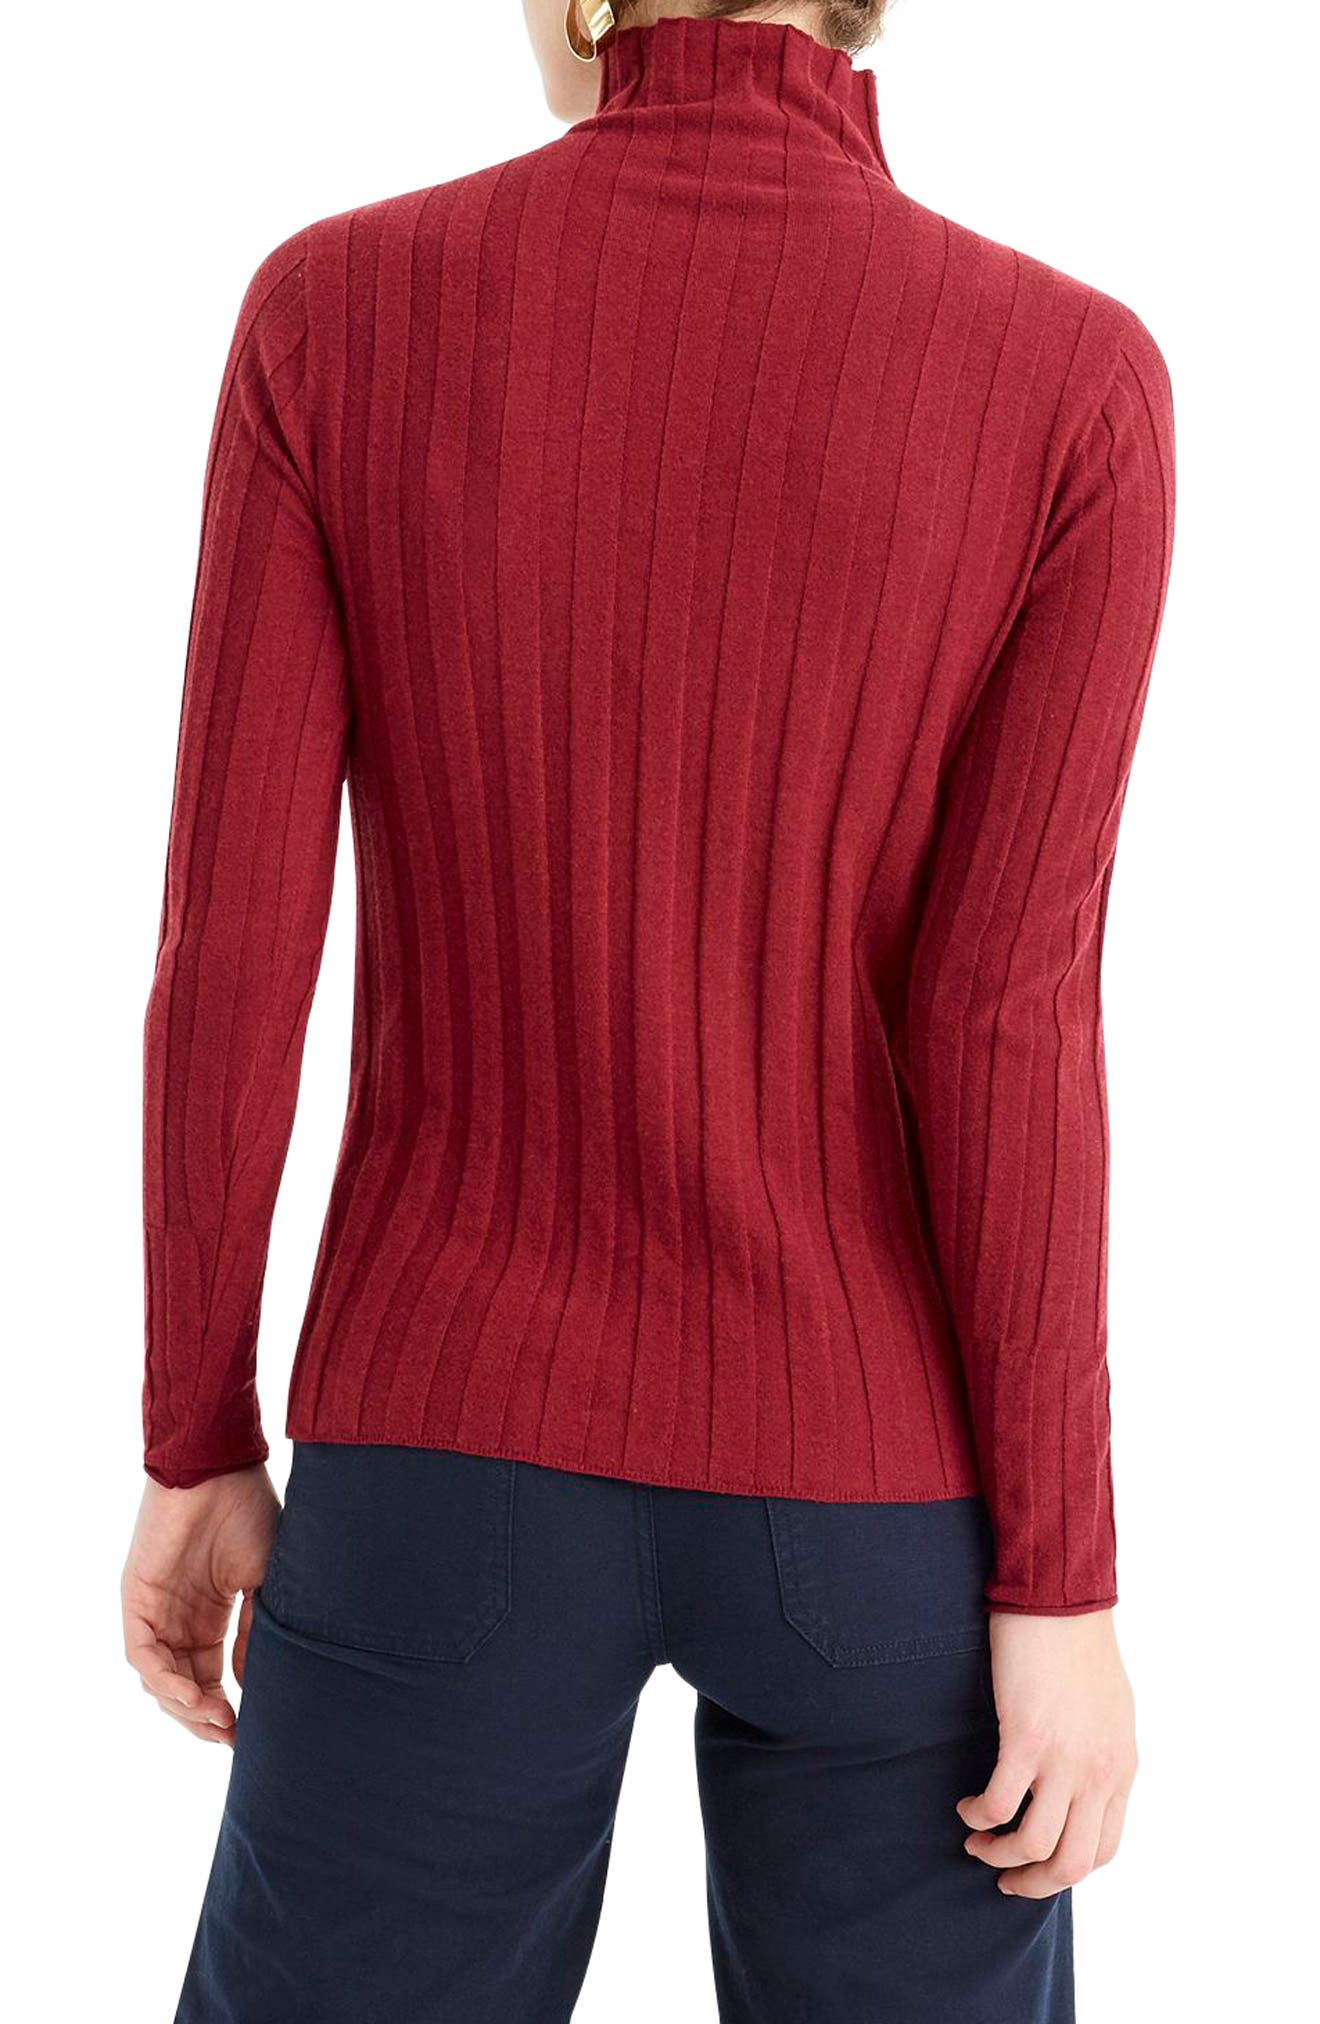 365 Stretch Ribbed Turtleneck Sweater,                             Alternate thumbnail 2, color,                             930